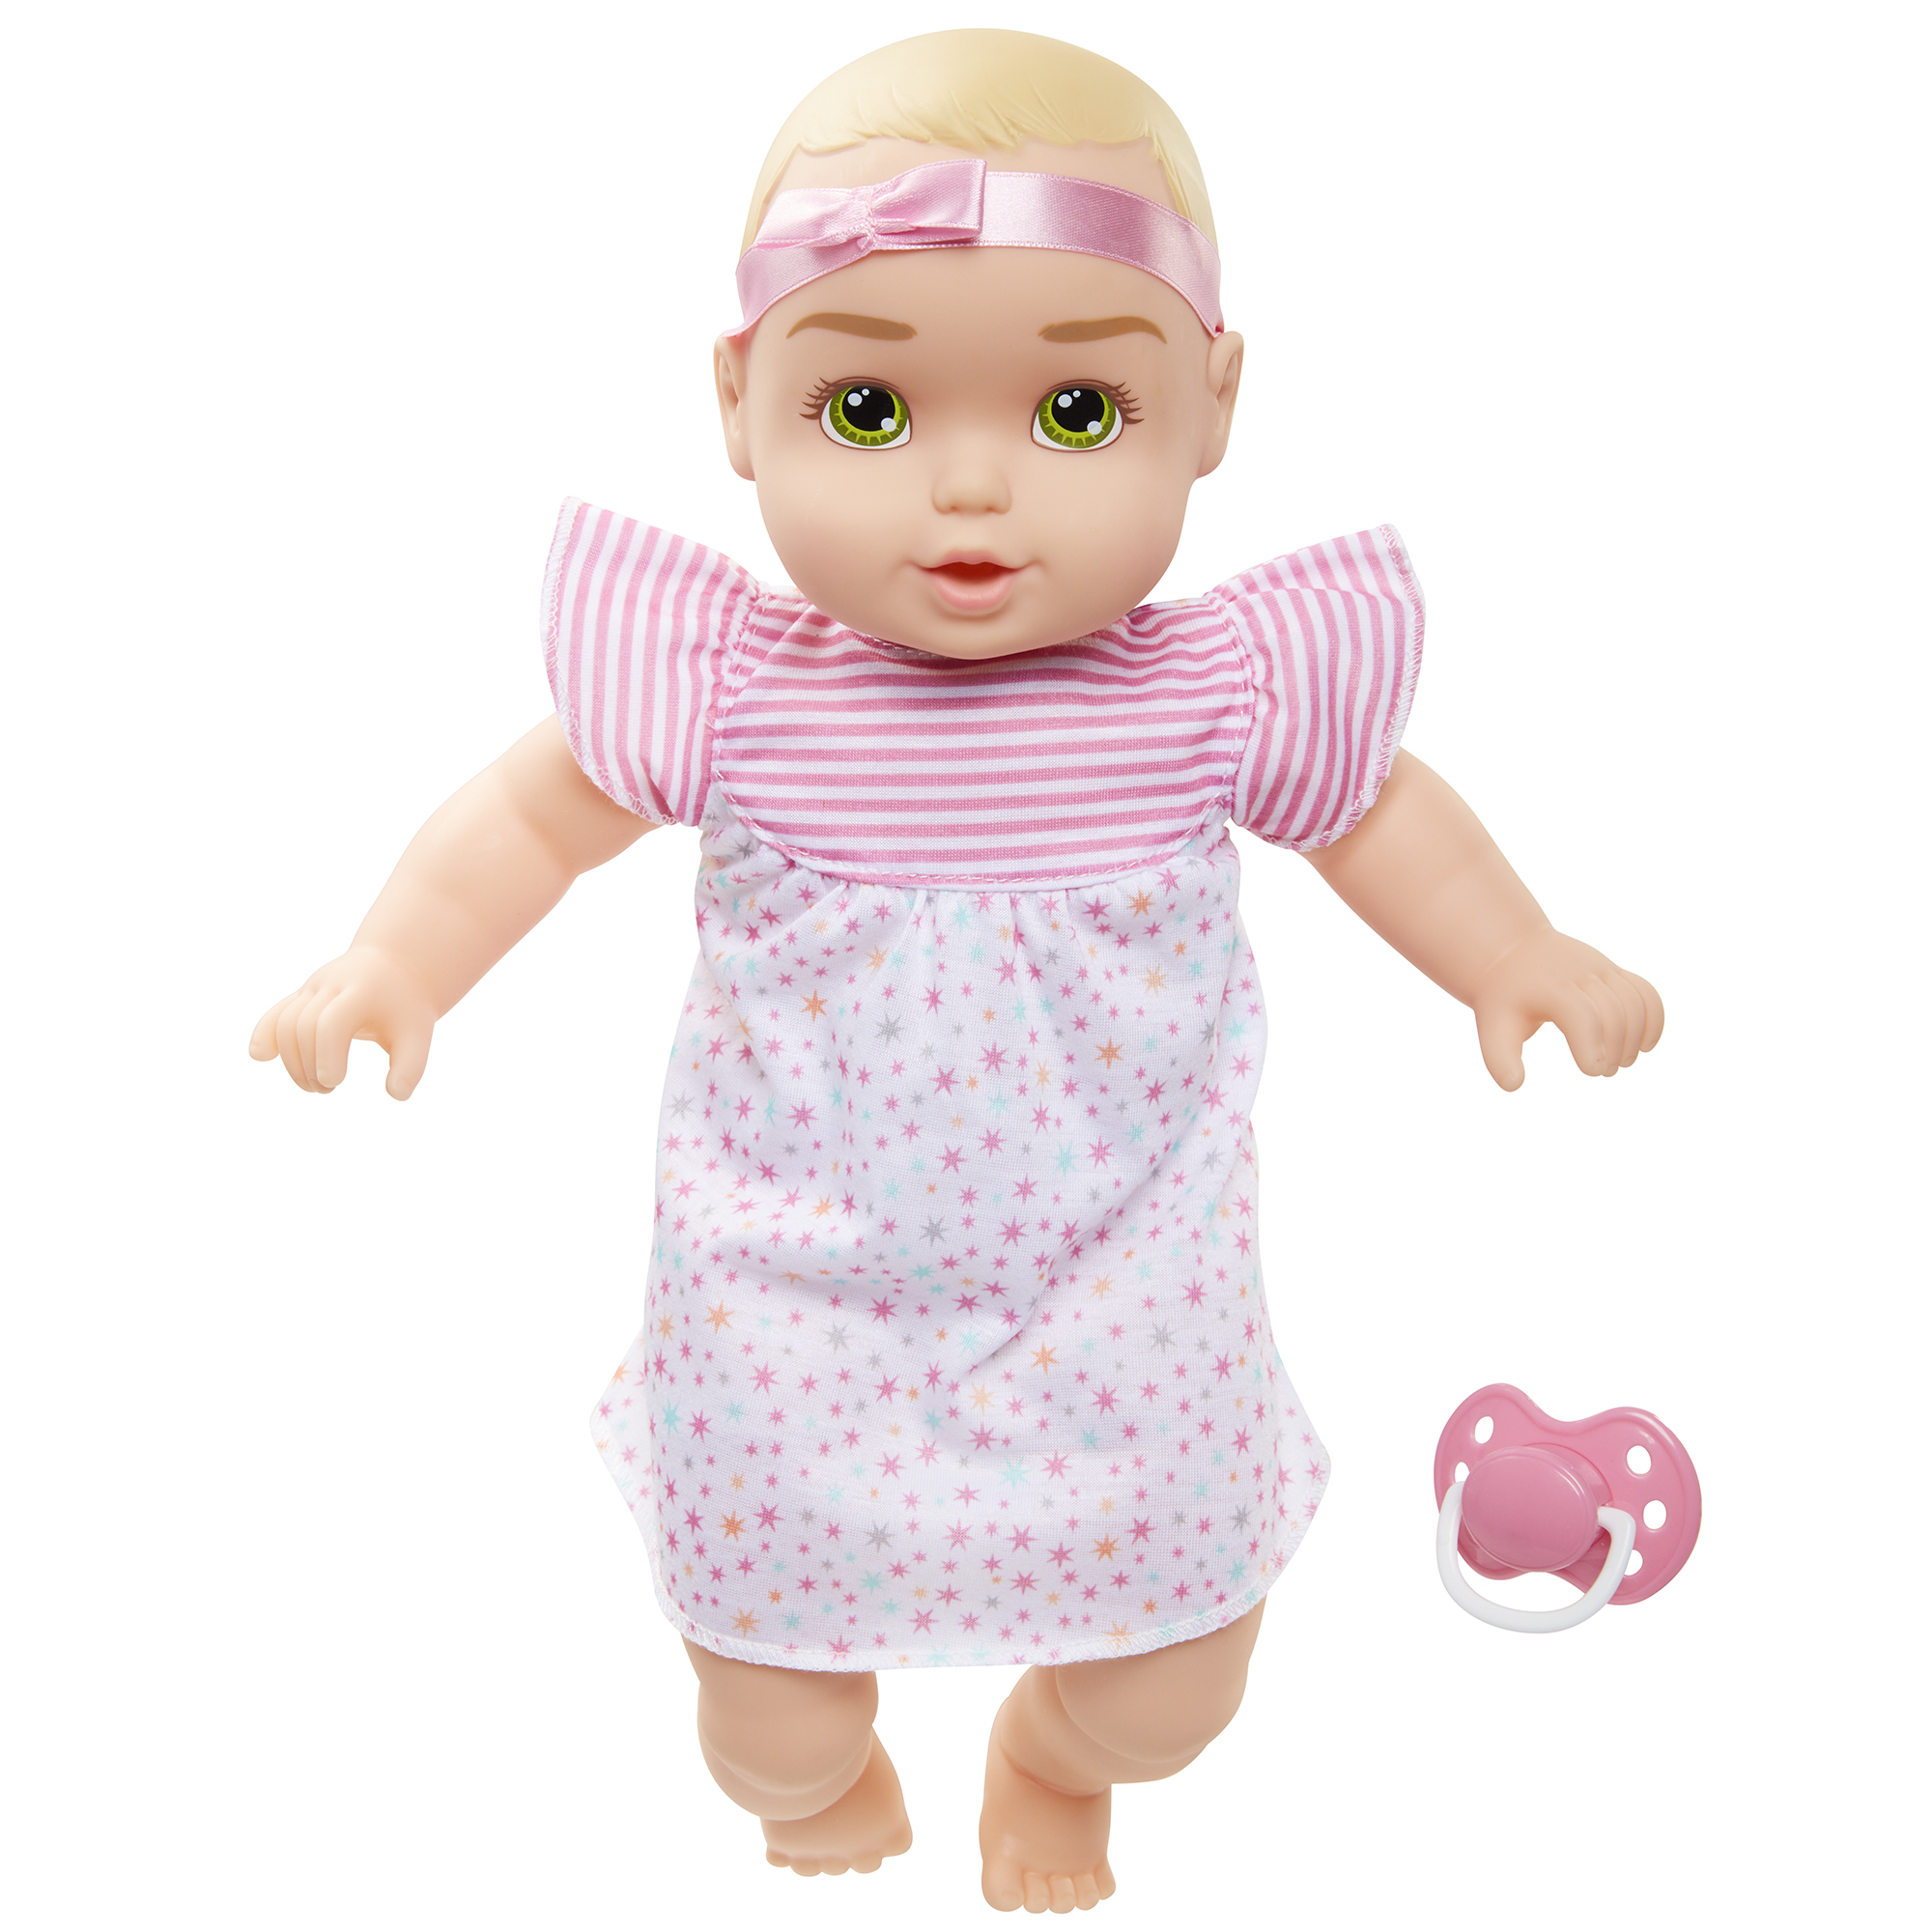 Perfectly Cute Baby 14 inch My Sweet Baby Girl Doll (Blonde - Hazel Eyes)